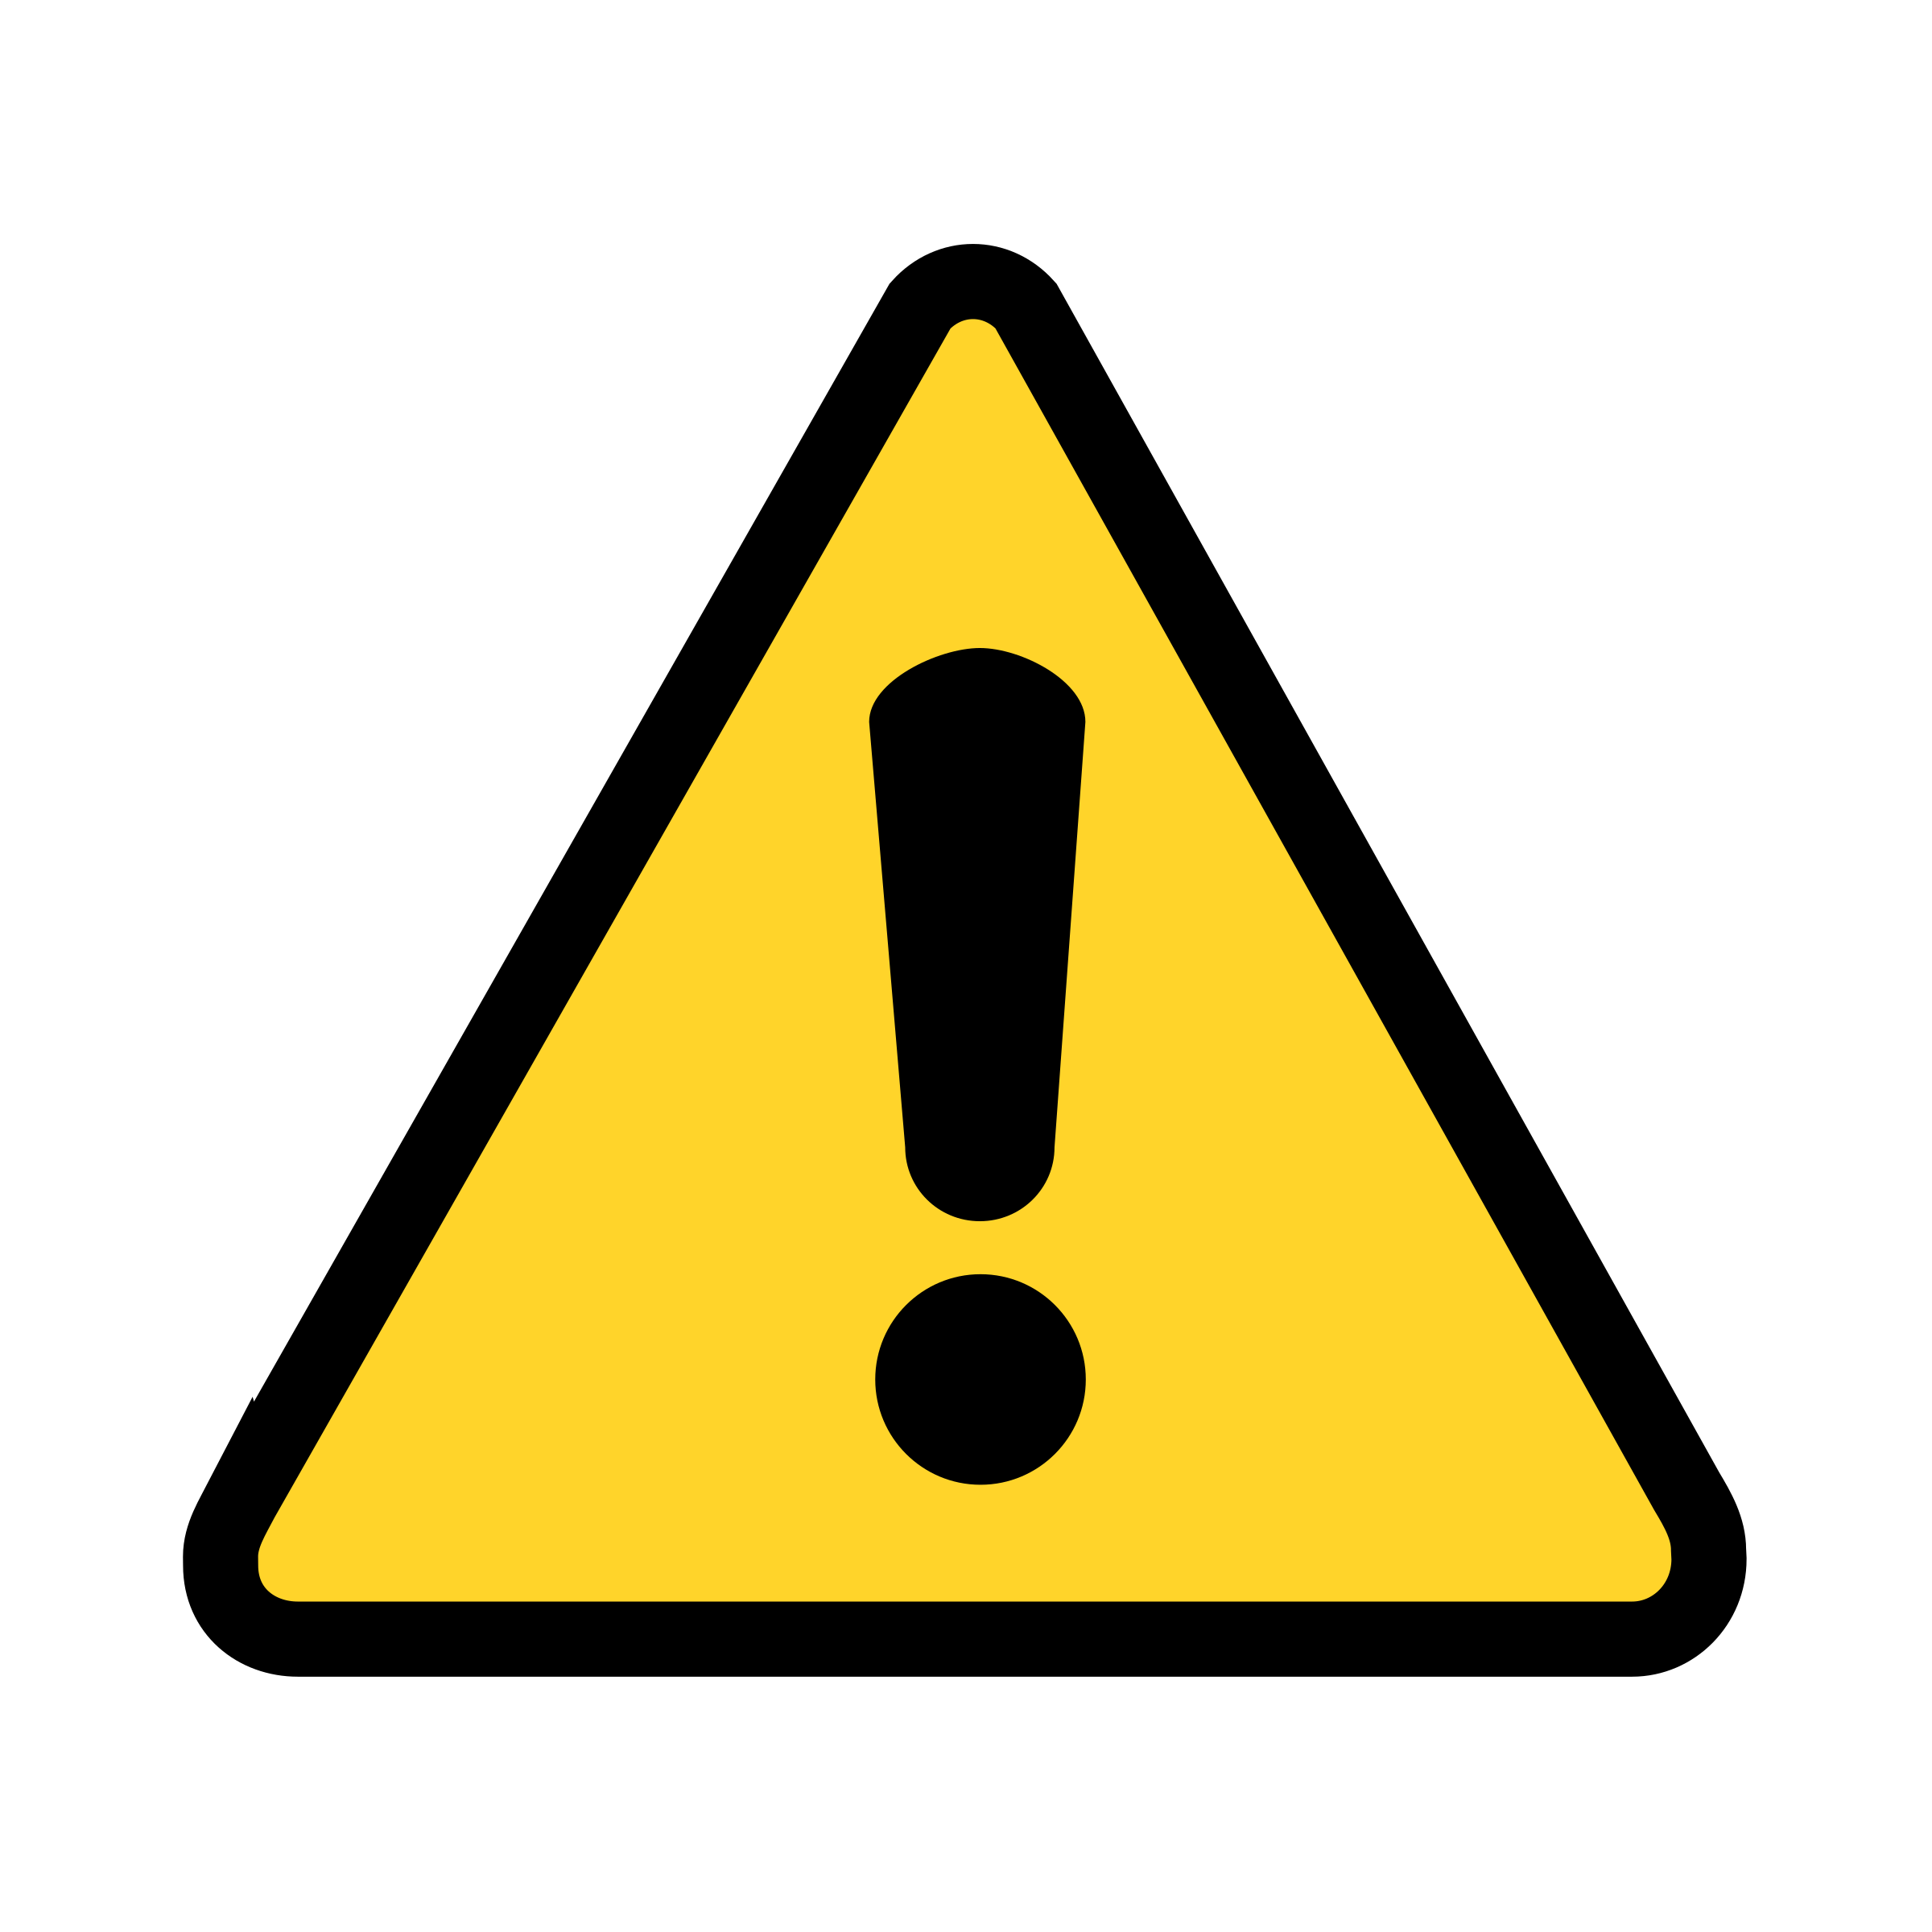 12 Warning Icon Simple Images